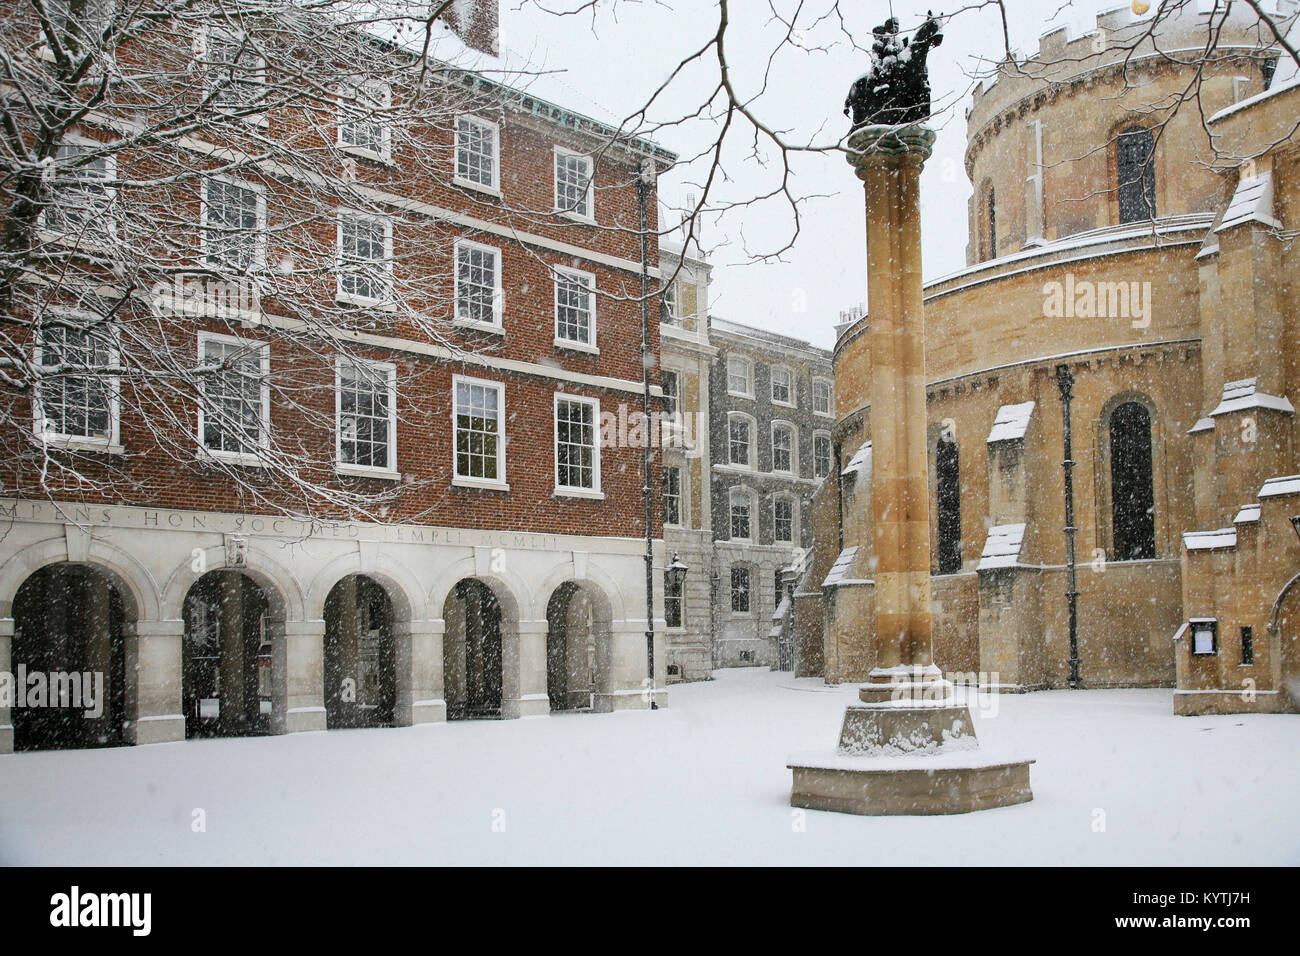 Snowing at Temple Church London - Stock Image